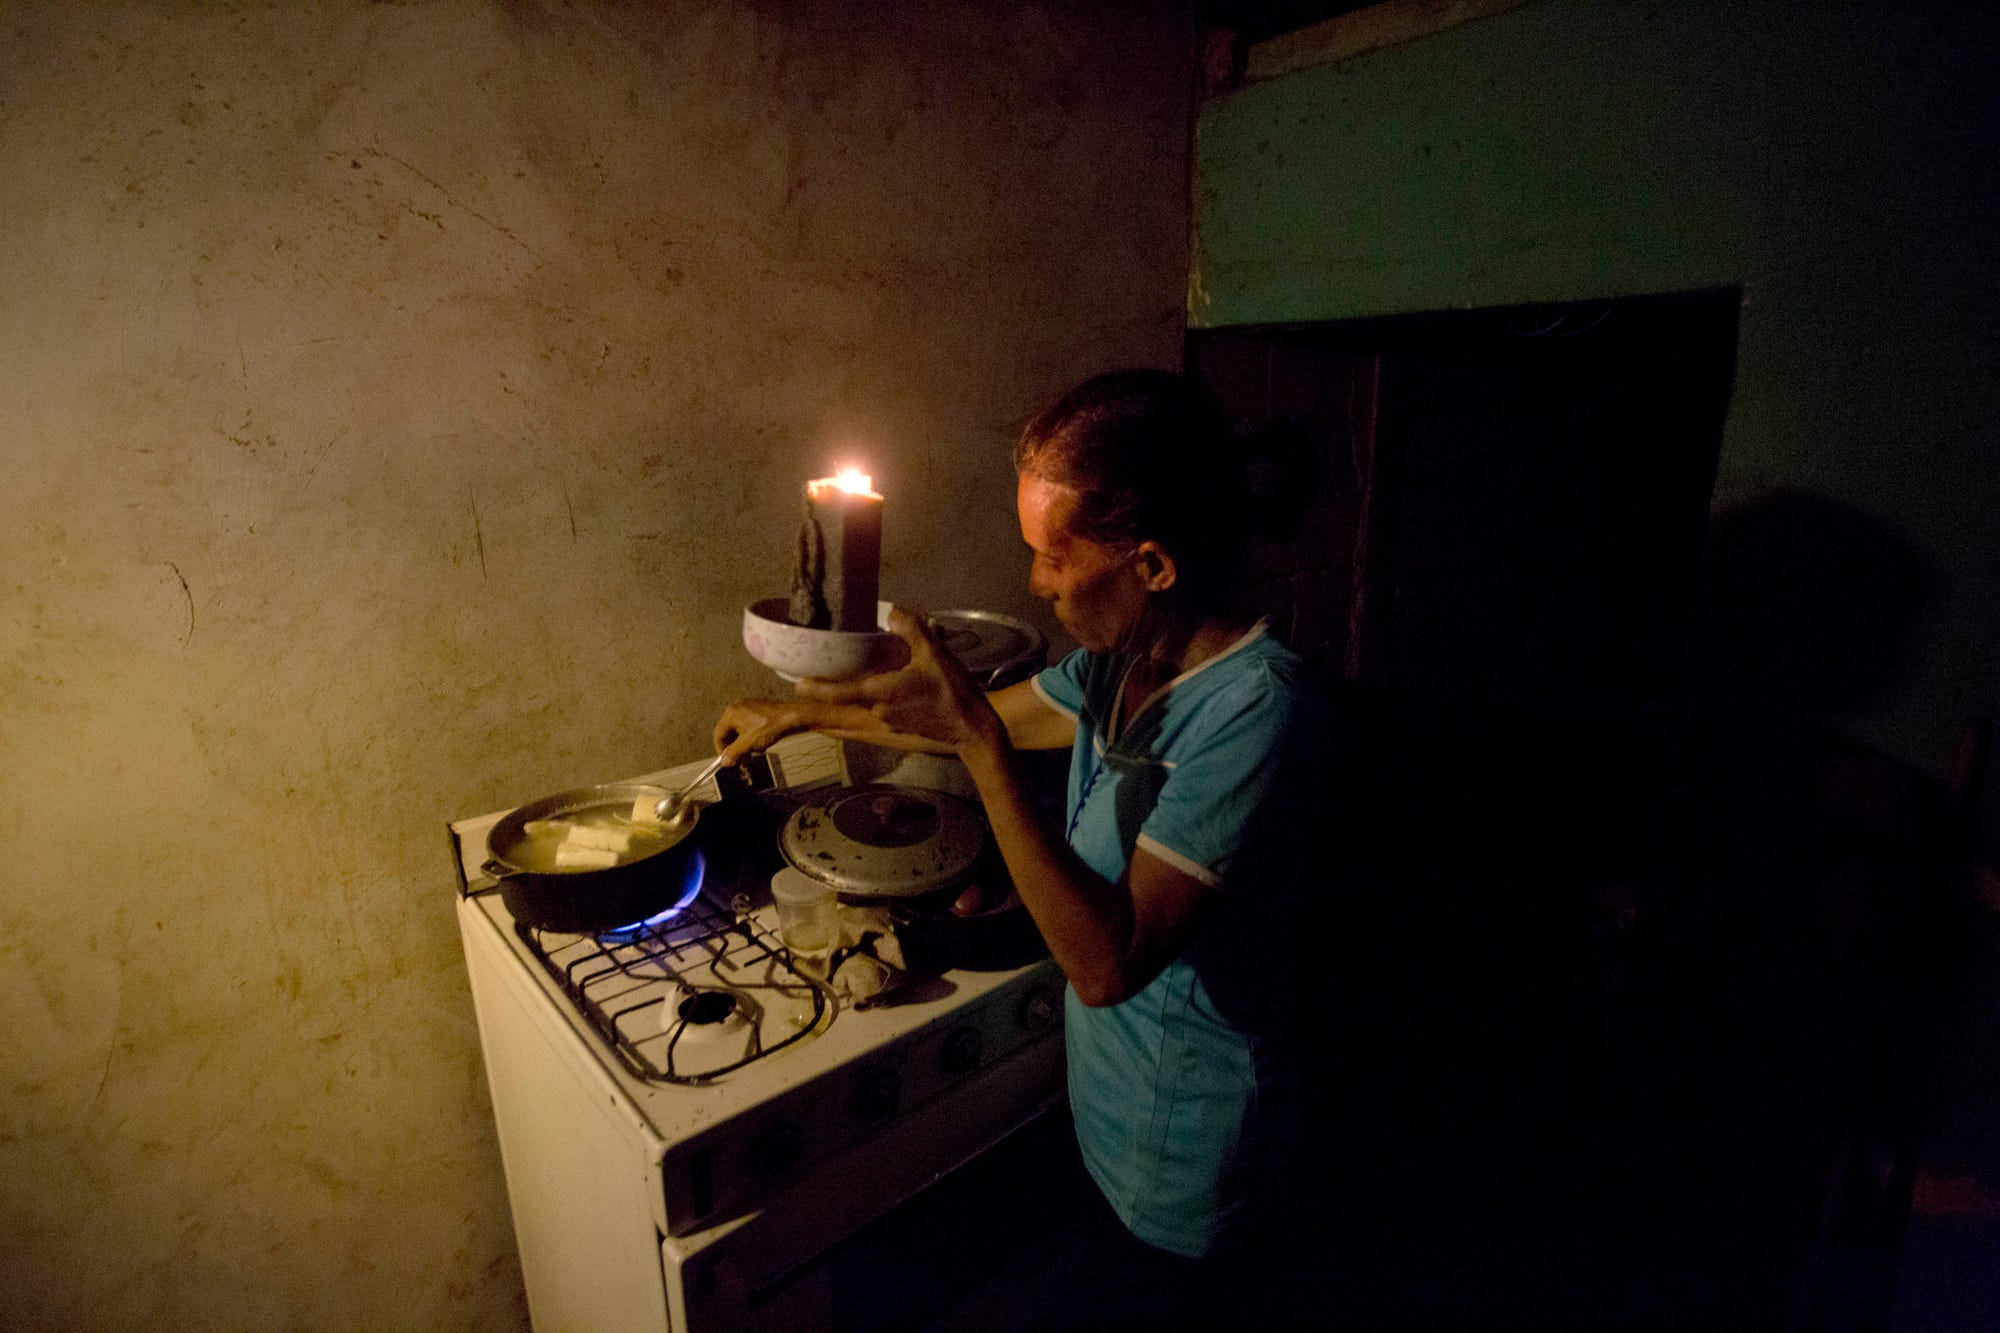 "In this Aug. 19, 2018 photo, Mireya Marquez uses candlelight to cook her dinner of boiled ""cassava,"" also known as yuca and manioc, during a blackout in Maracaibo, Venezuela. For months Maracaibo's residents have endured rolling blackouts, but things turned dire on August 10 when a fire destroyed a main power line supplying the city of 1.5 million people. (AP Photo/Fernando Llano)"